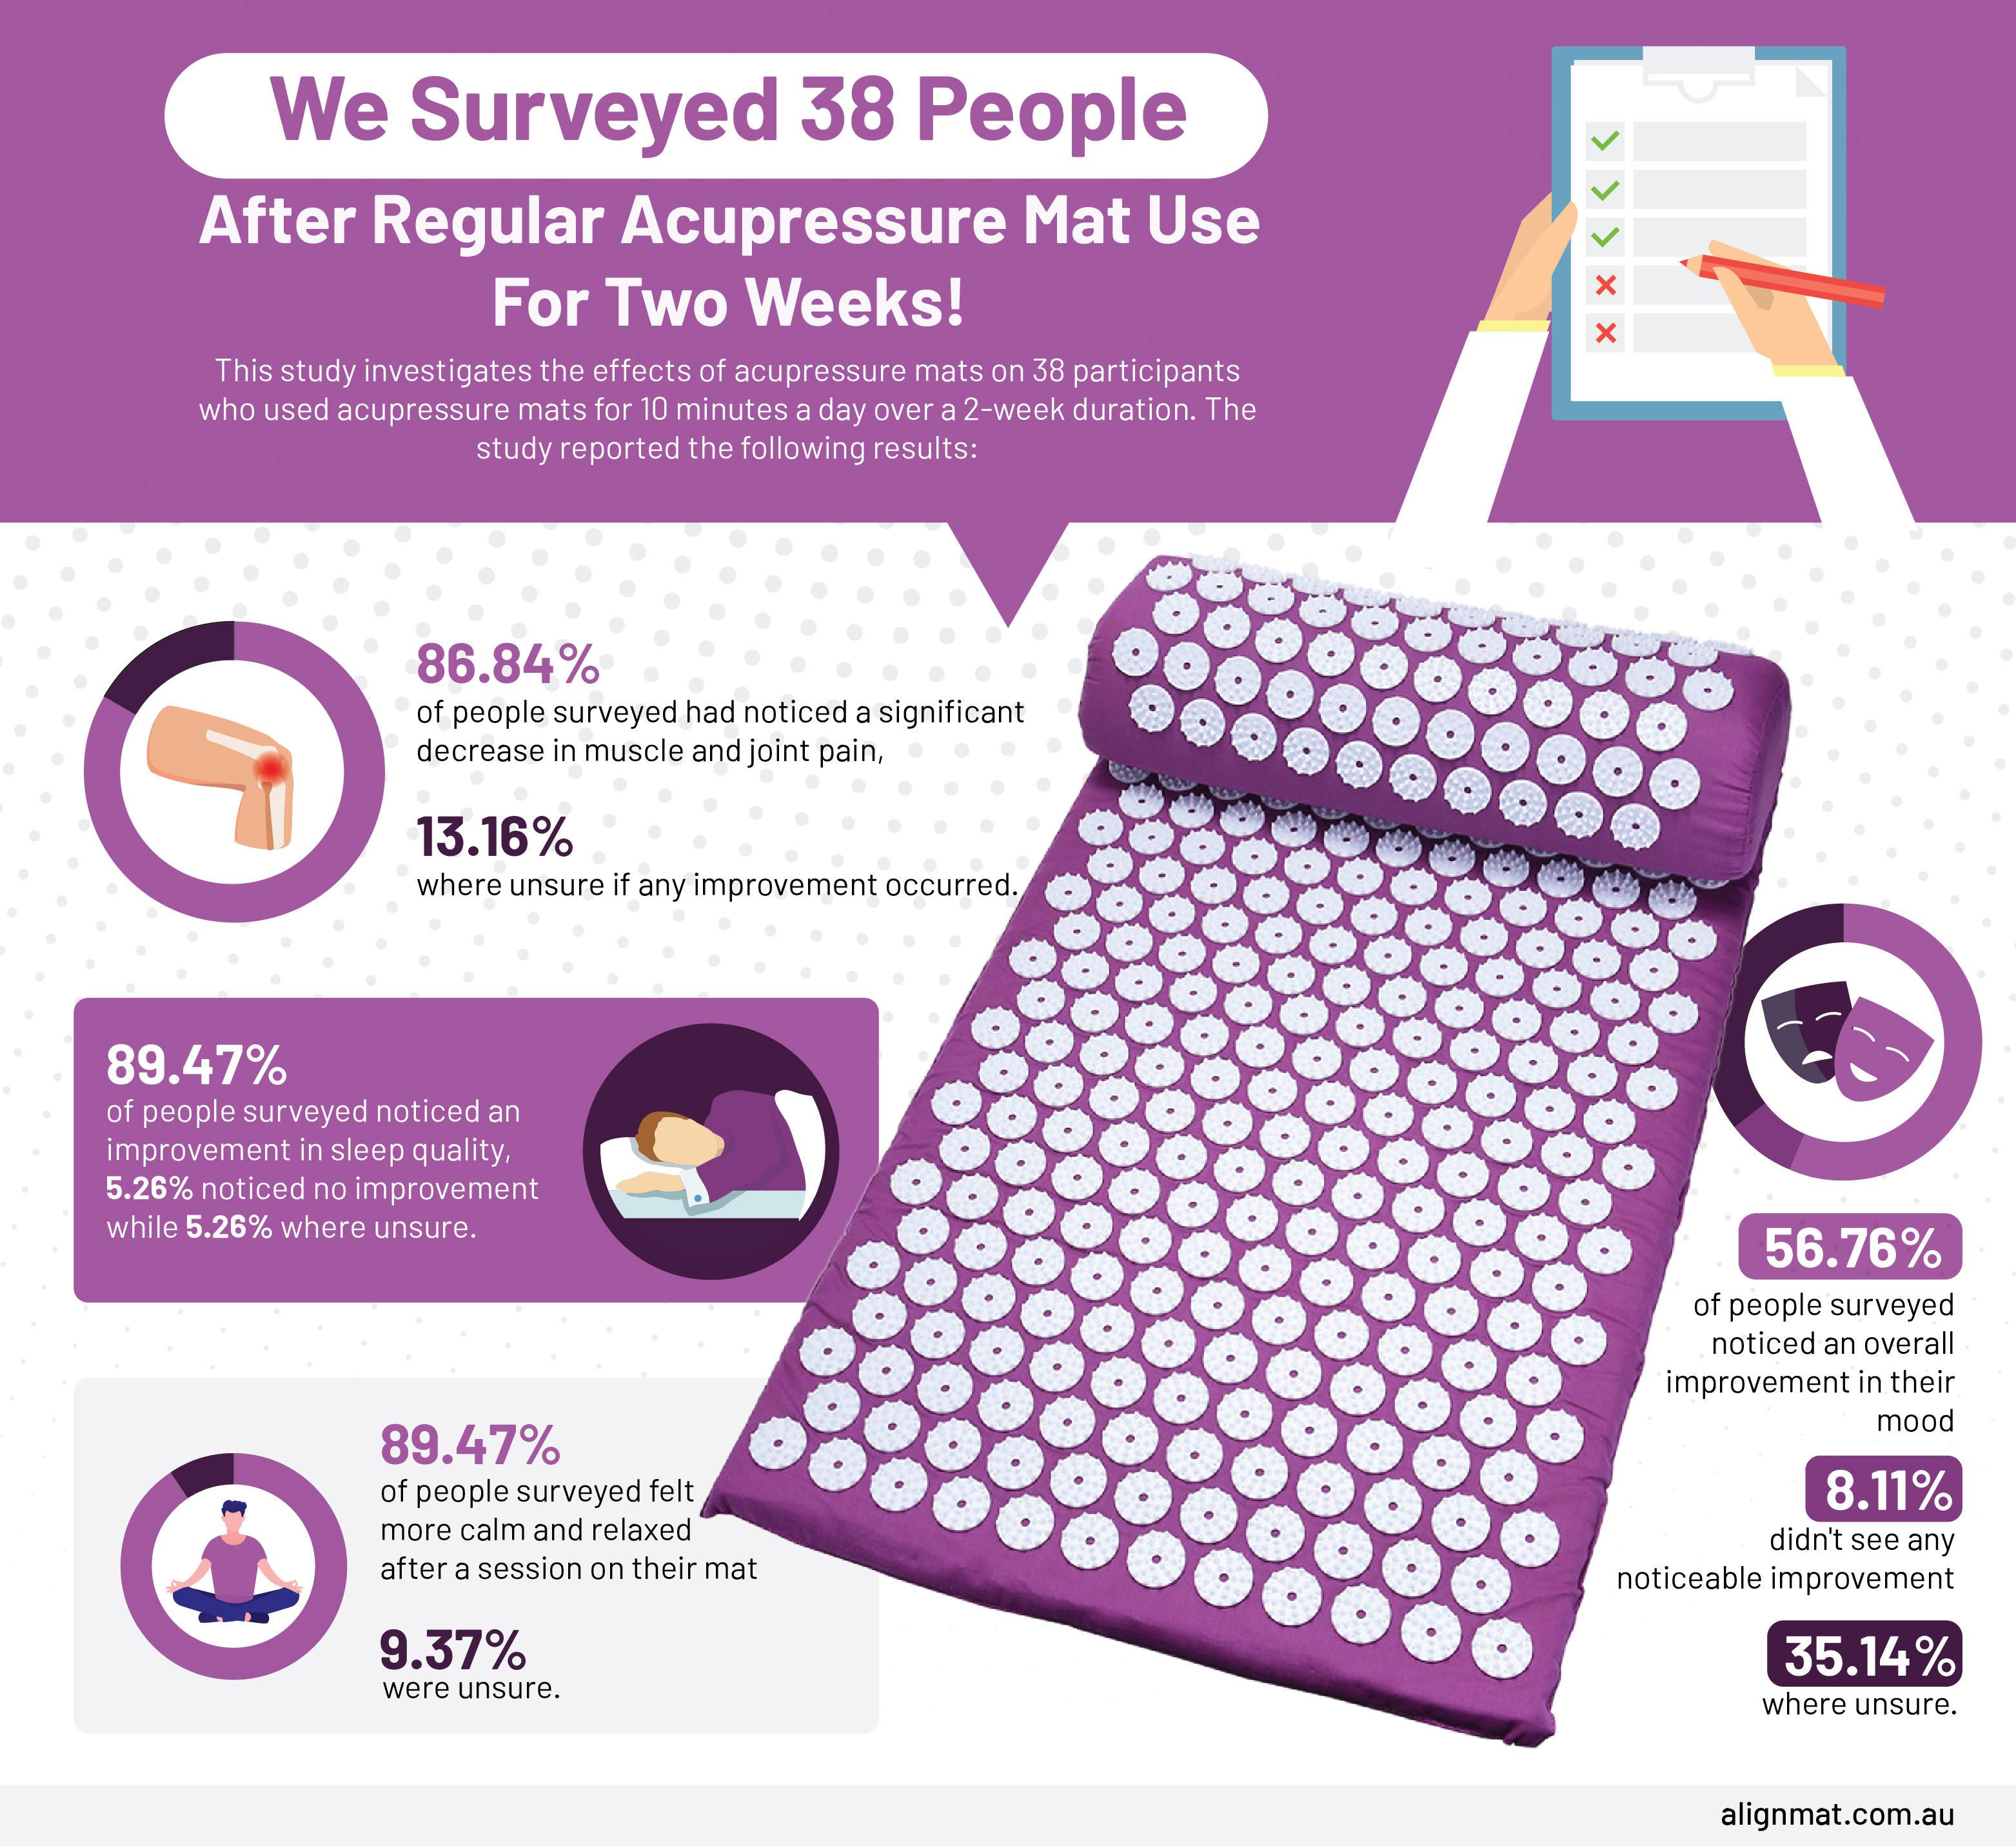 Acuppresure mat Surveyed 1